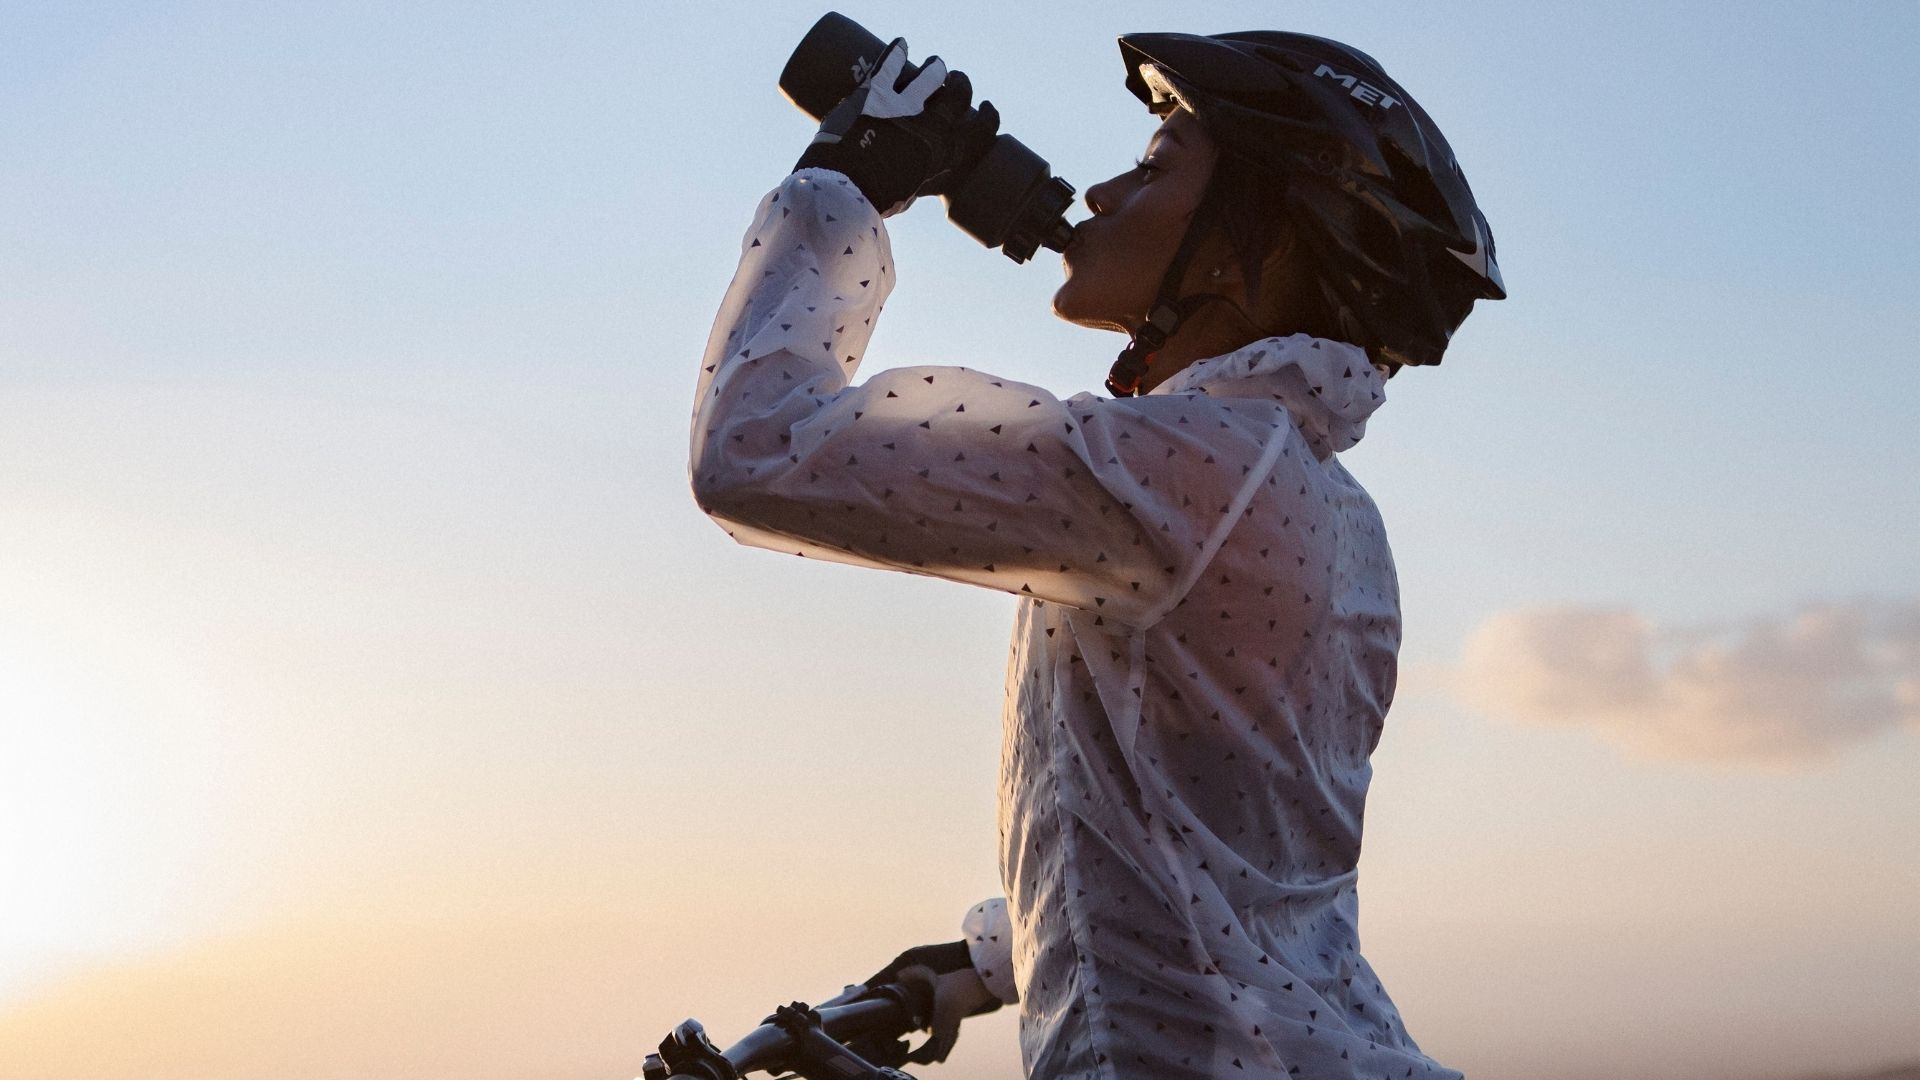 Intake of collagen supplement for a better bike ride